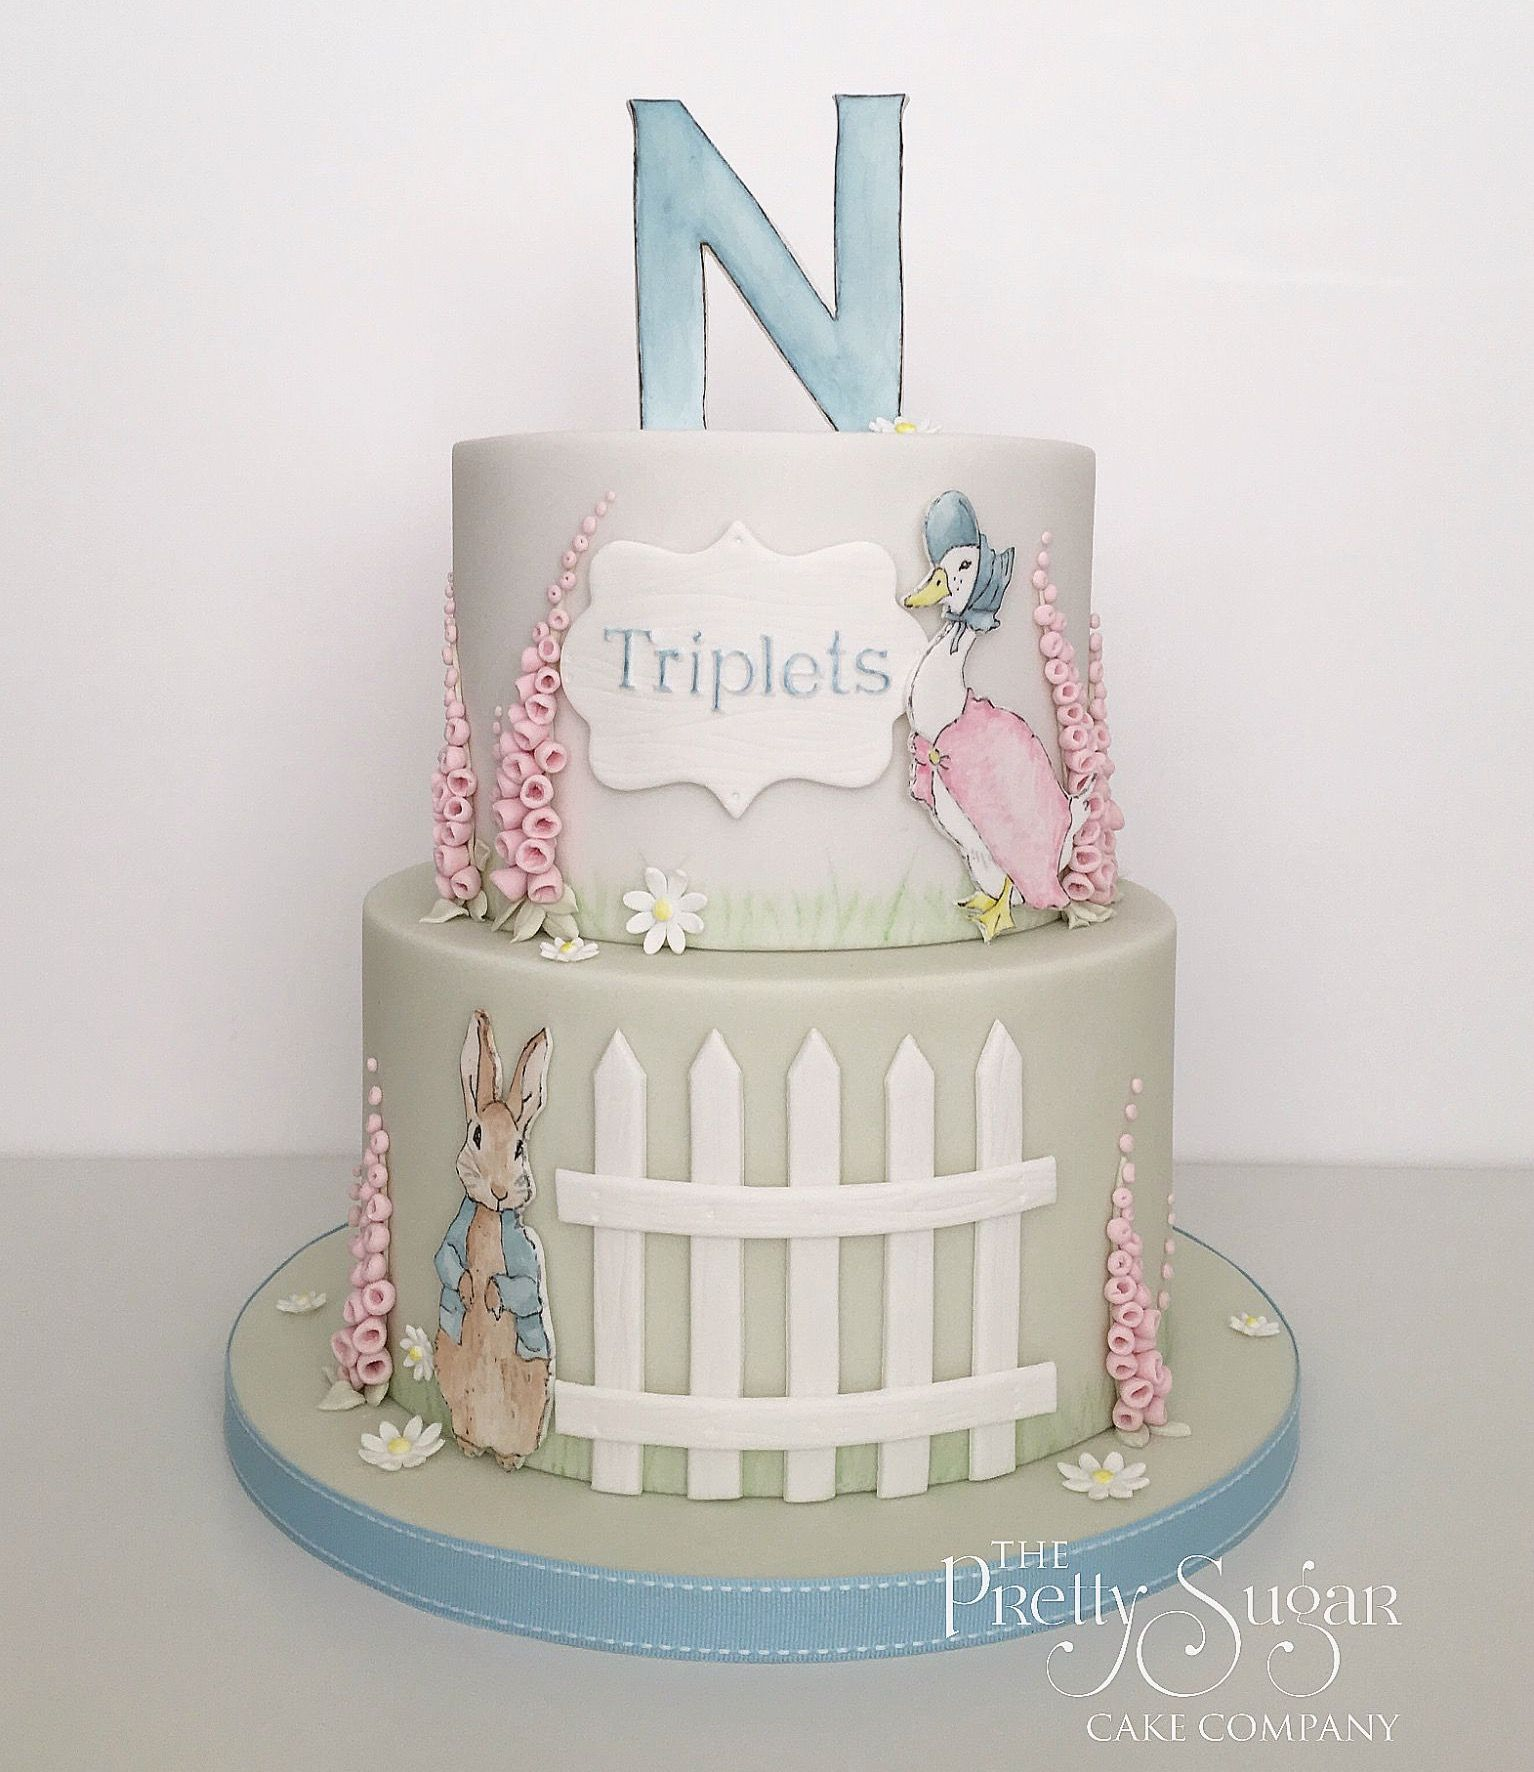 Beatrix Potter Theme Baby Shower Cake With Hand Painted Details Christening Cake Girls Peter Rabbit Cake Beatrix Potter Cake